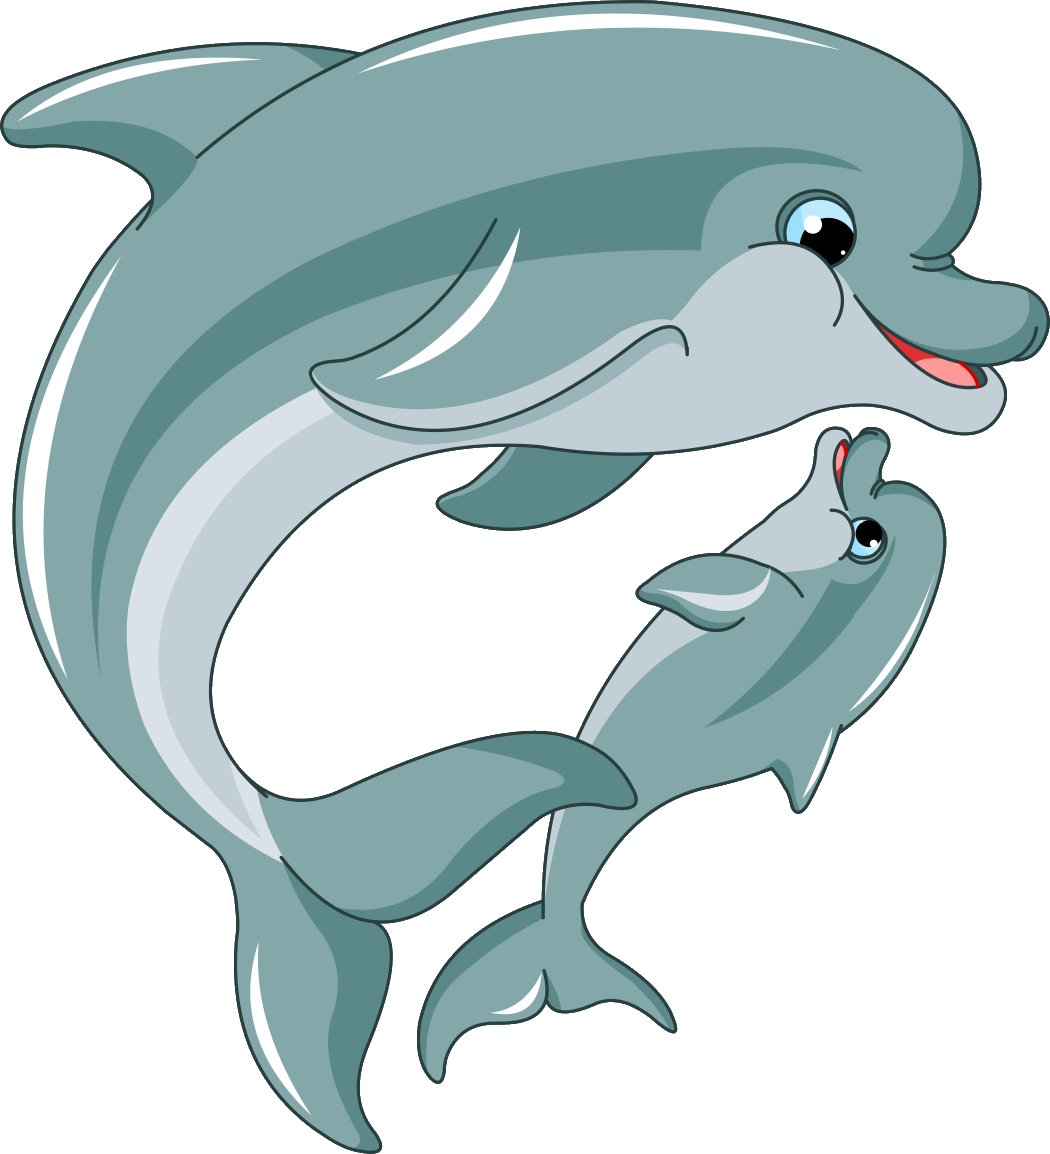 Clipart dolphin friendly dolphin. Pin by valentina on